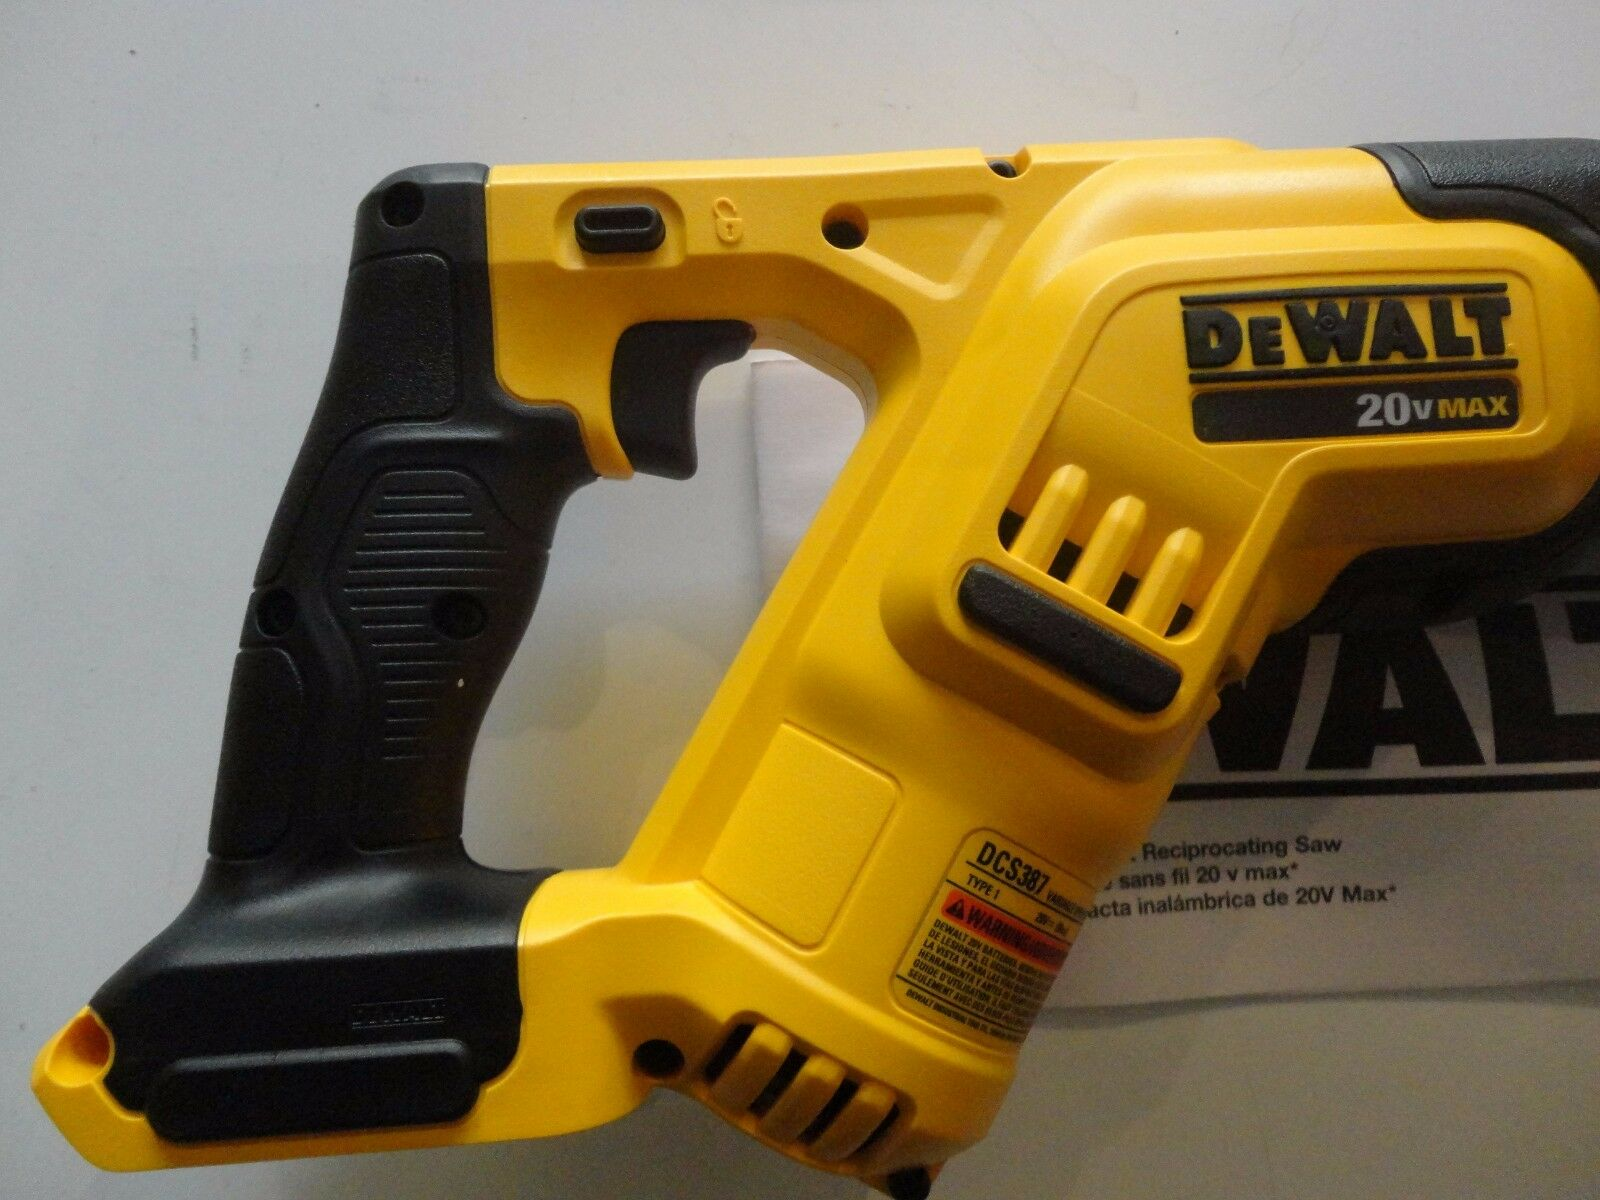 Dewalt dcs387b 20v reciprocating bare saw ebay greentooth Image collections